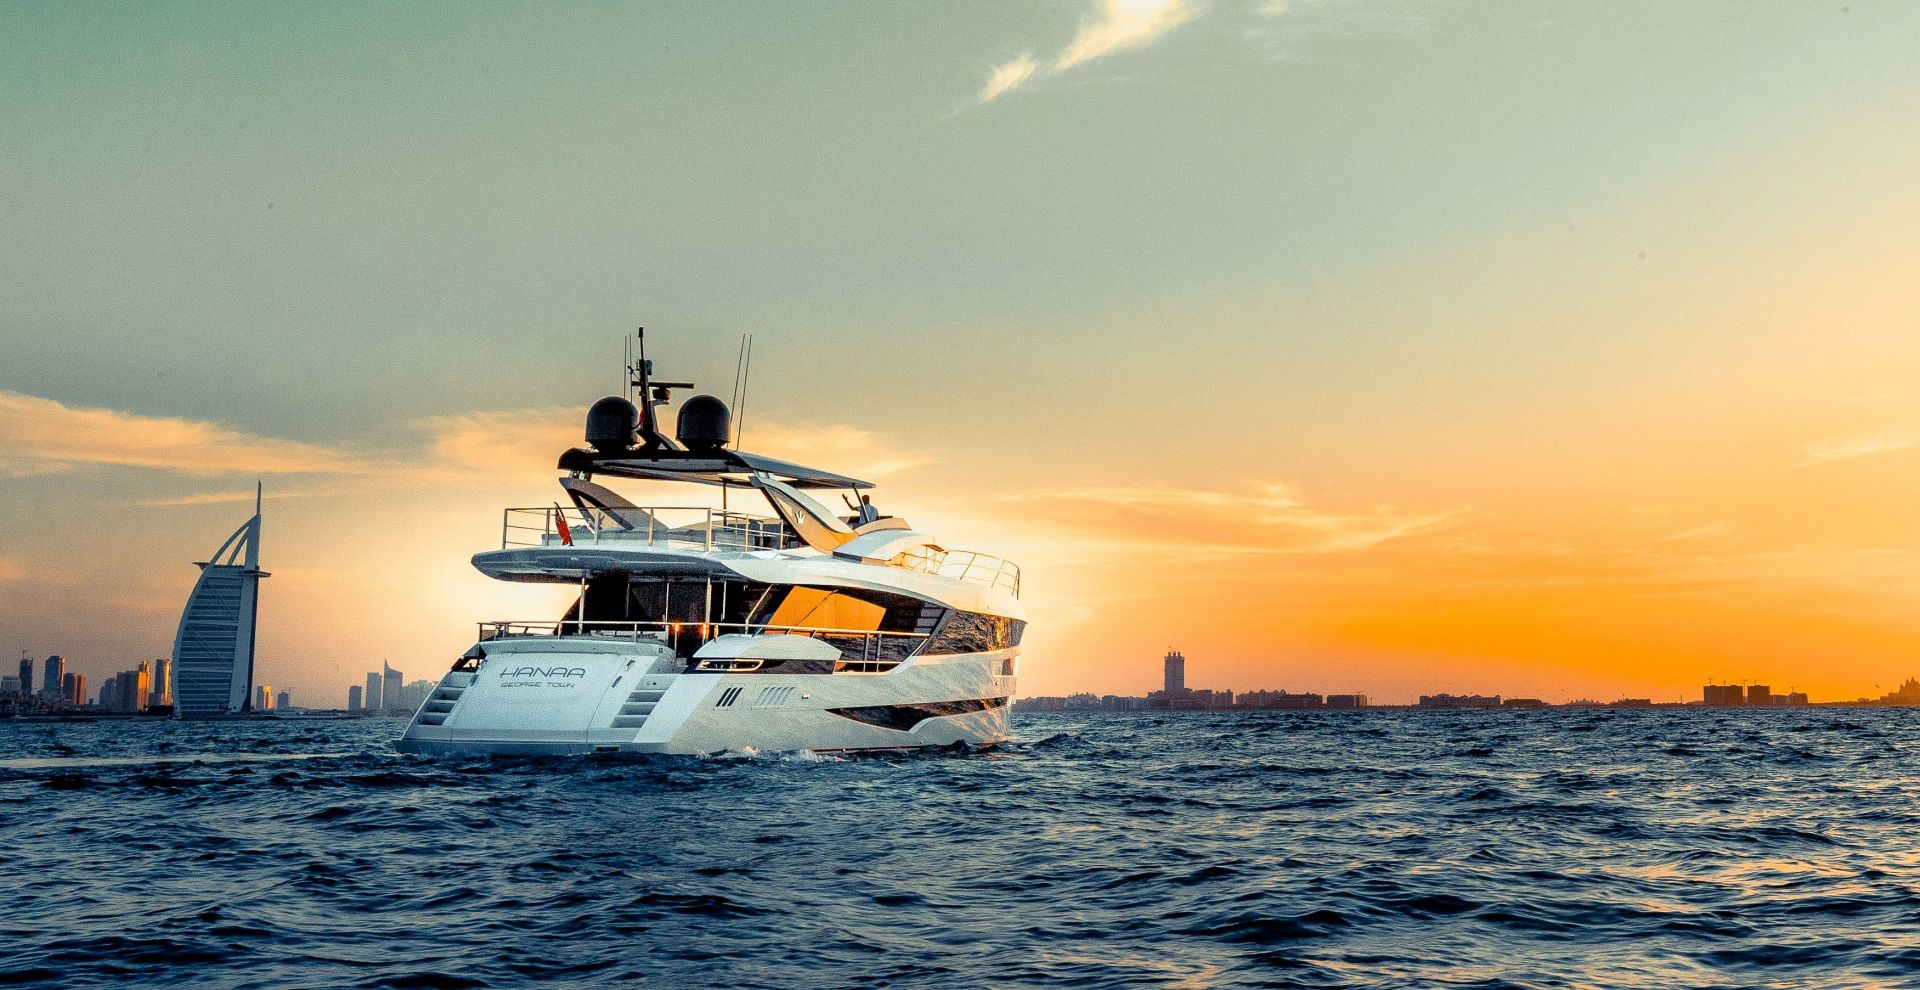 M/Y HANAA yacht for charter anchored in Dubai